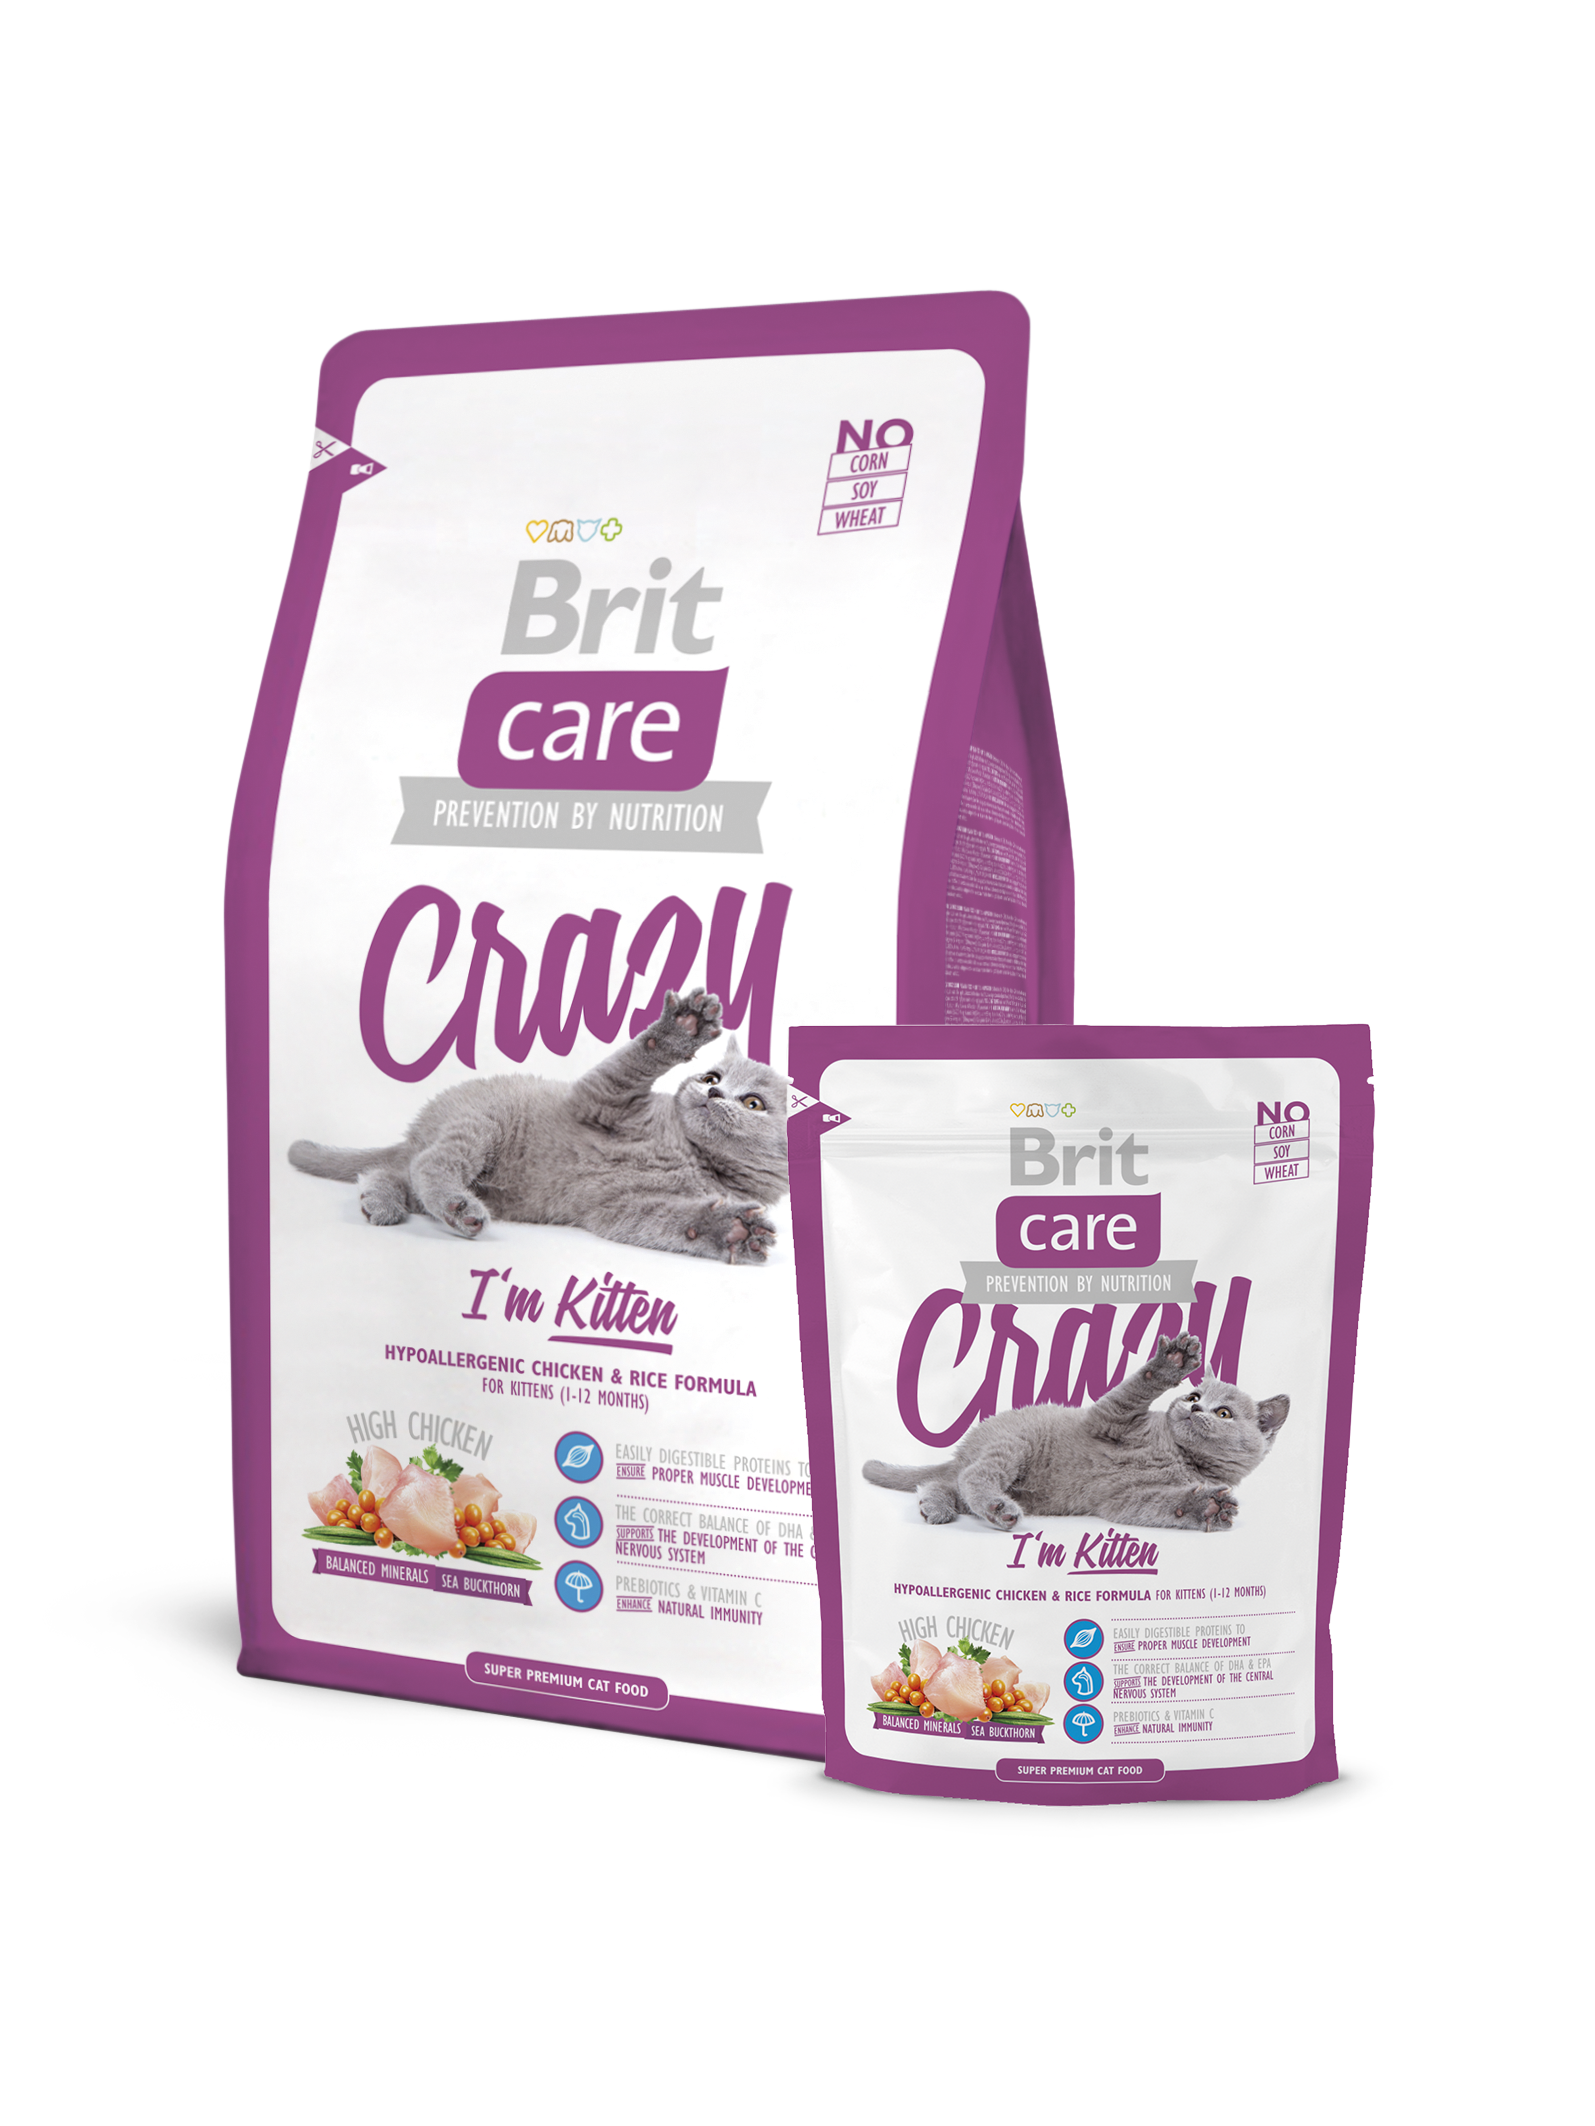 Brit Care Cat Food Crazy I'm Kitten 2kg - Pet Food - Pet Store - Pet supplies